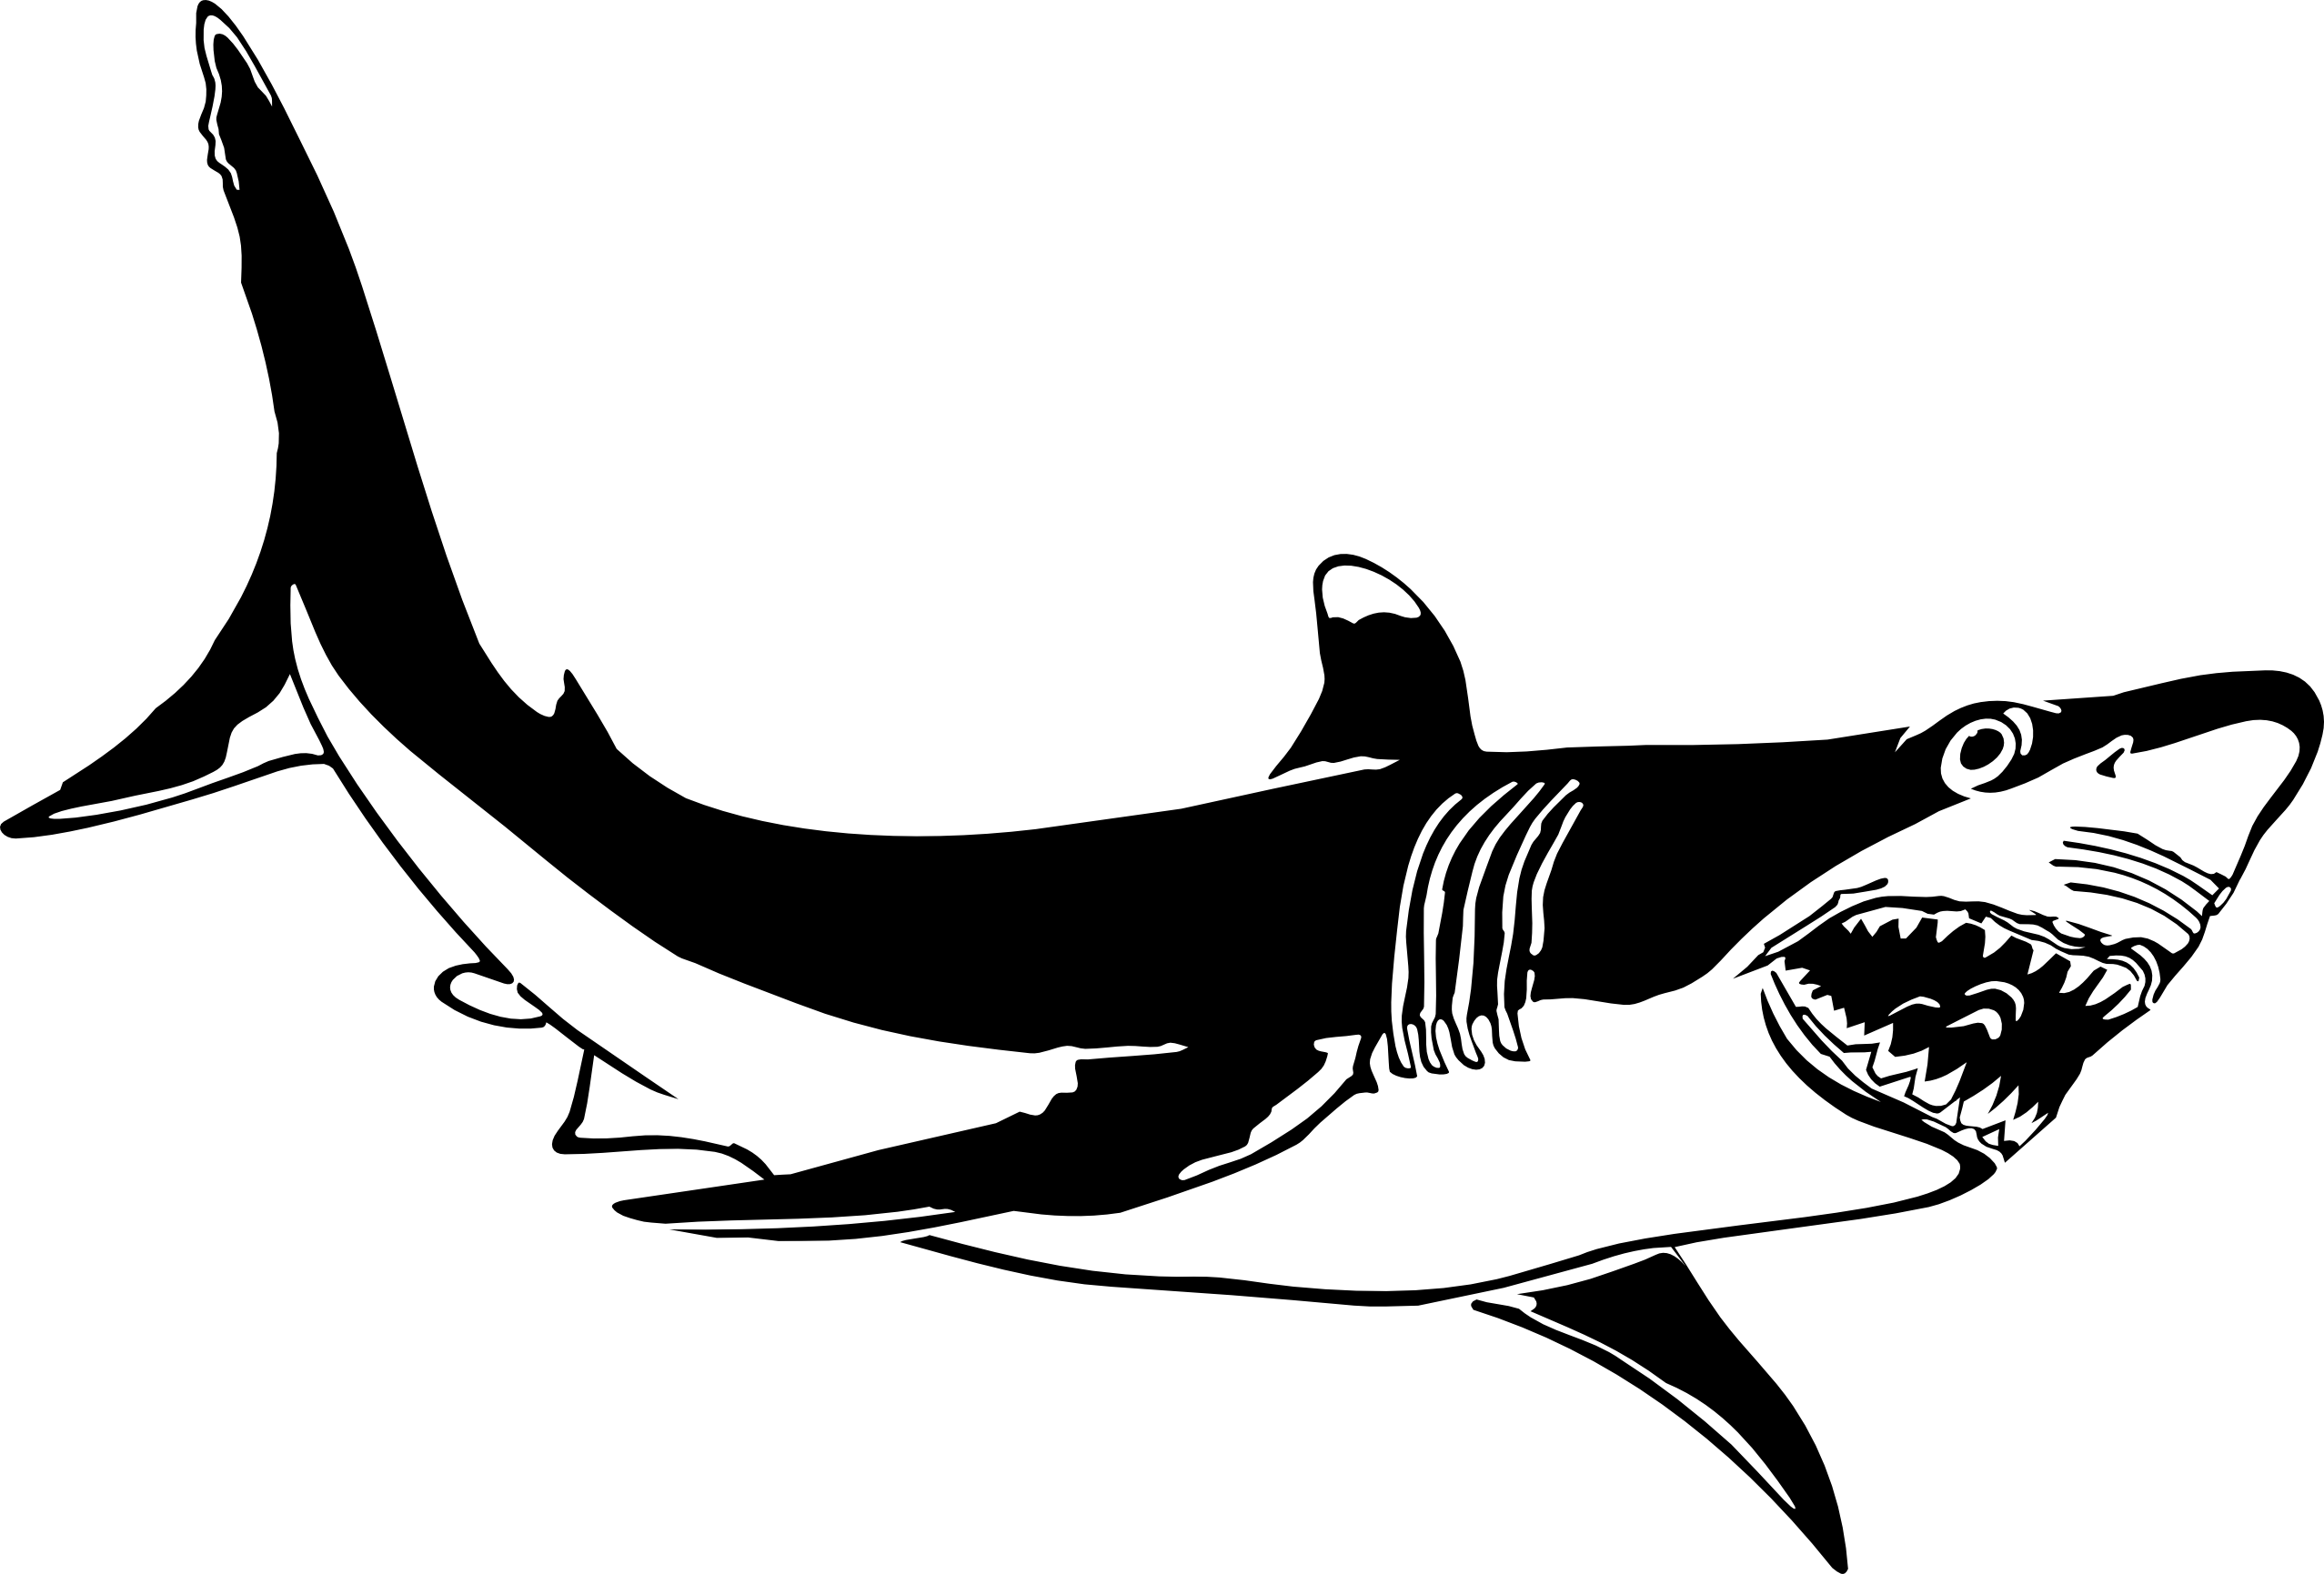 Great White Shark Clip Art Hari